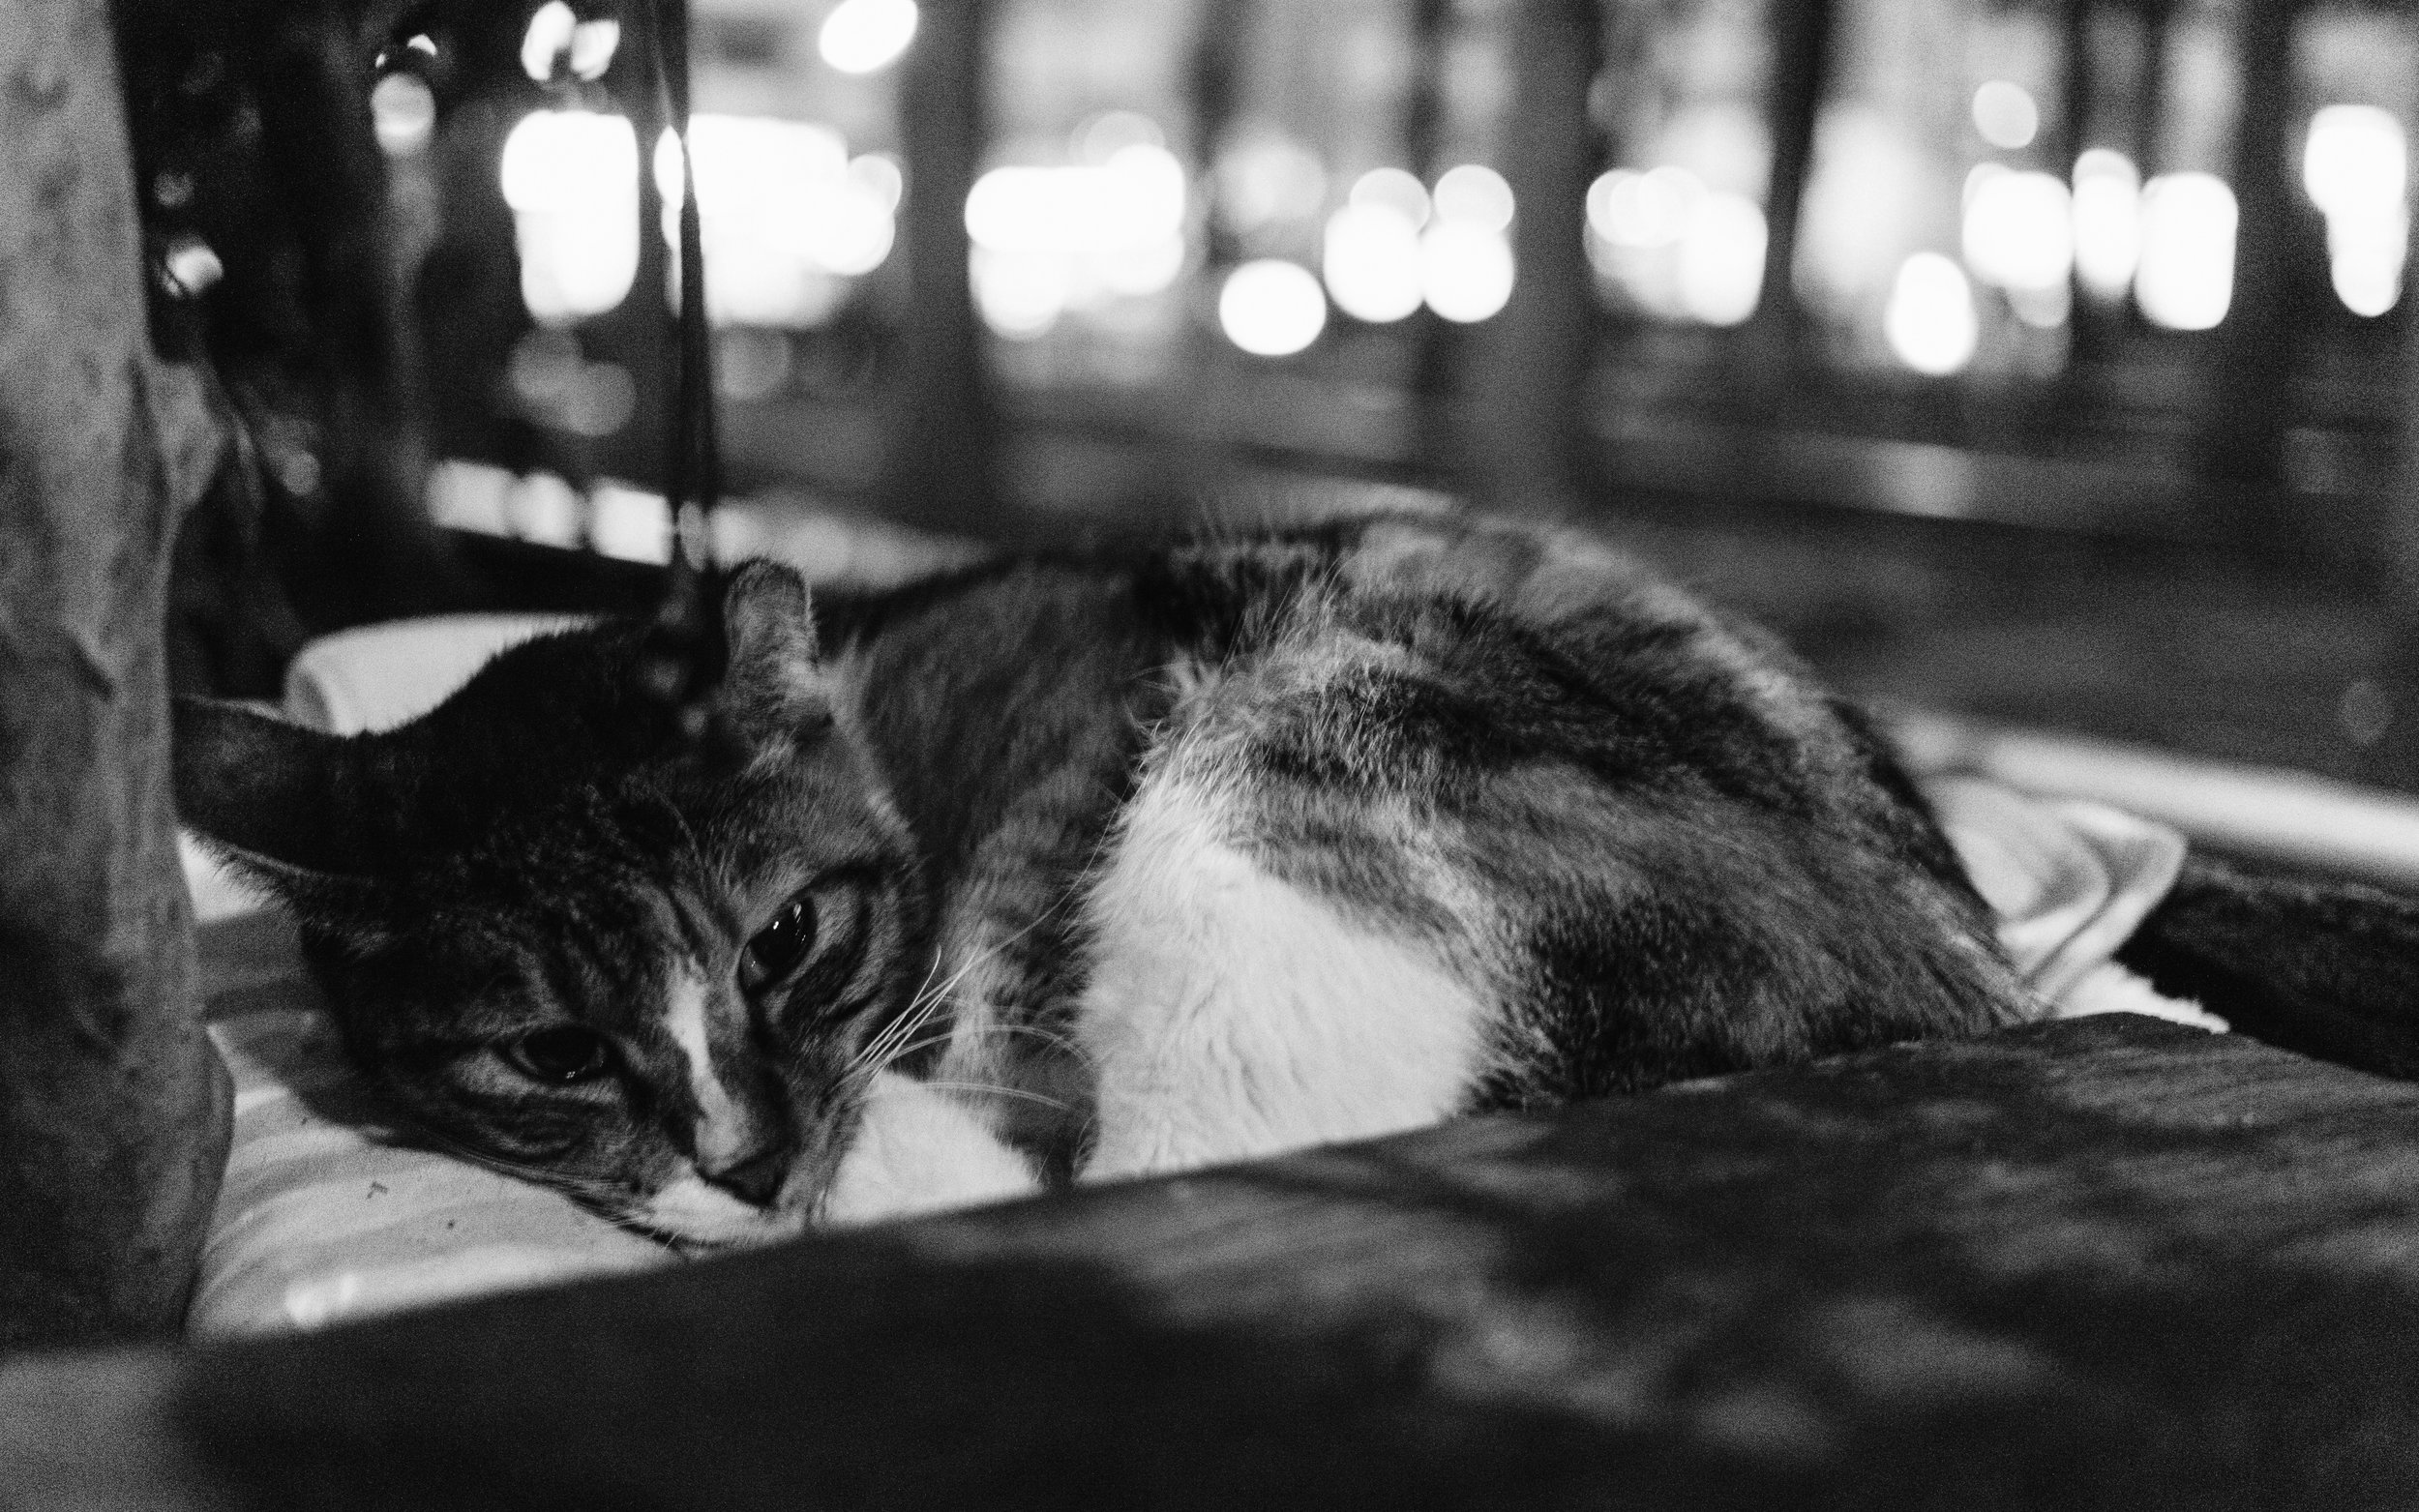 The cats are at their most vulnerable after their caretakers leave, as sometimes the extreme winter nights can freeze them to death with no warm place to run to.